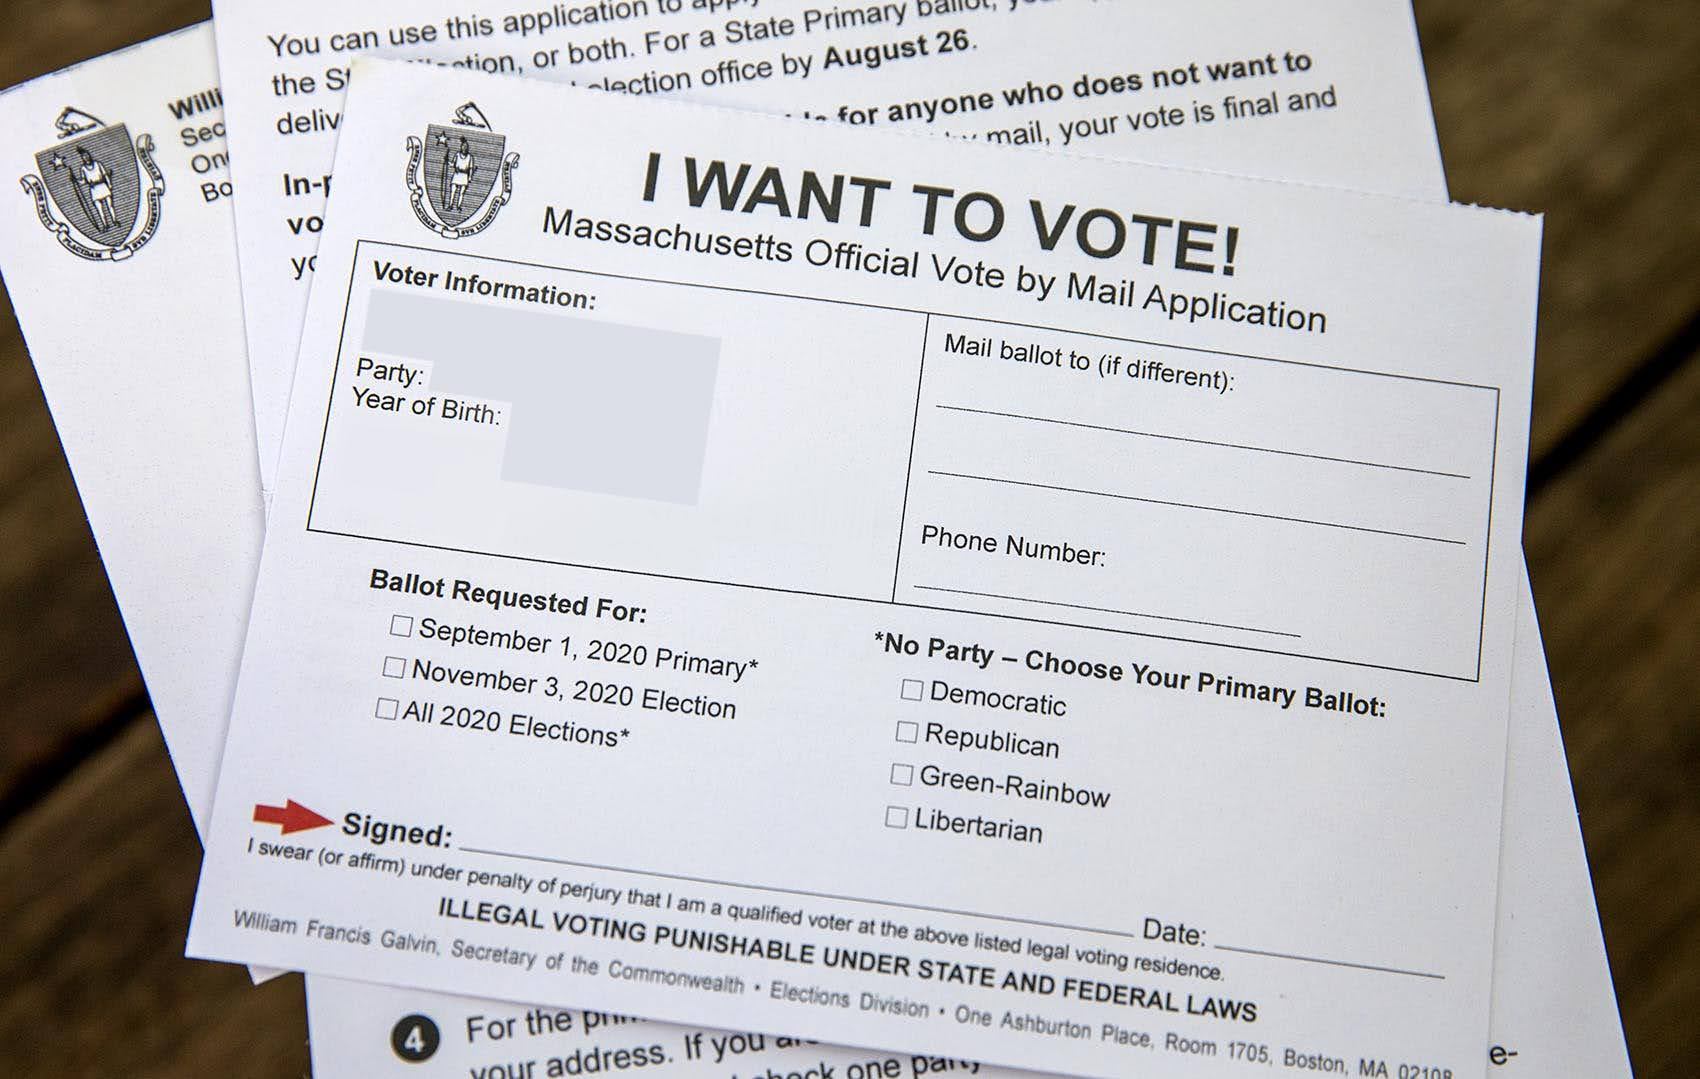 Mass 2020 Primary What To Know About Voting By Mail Or At The Polls Wbur News